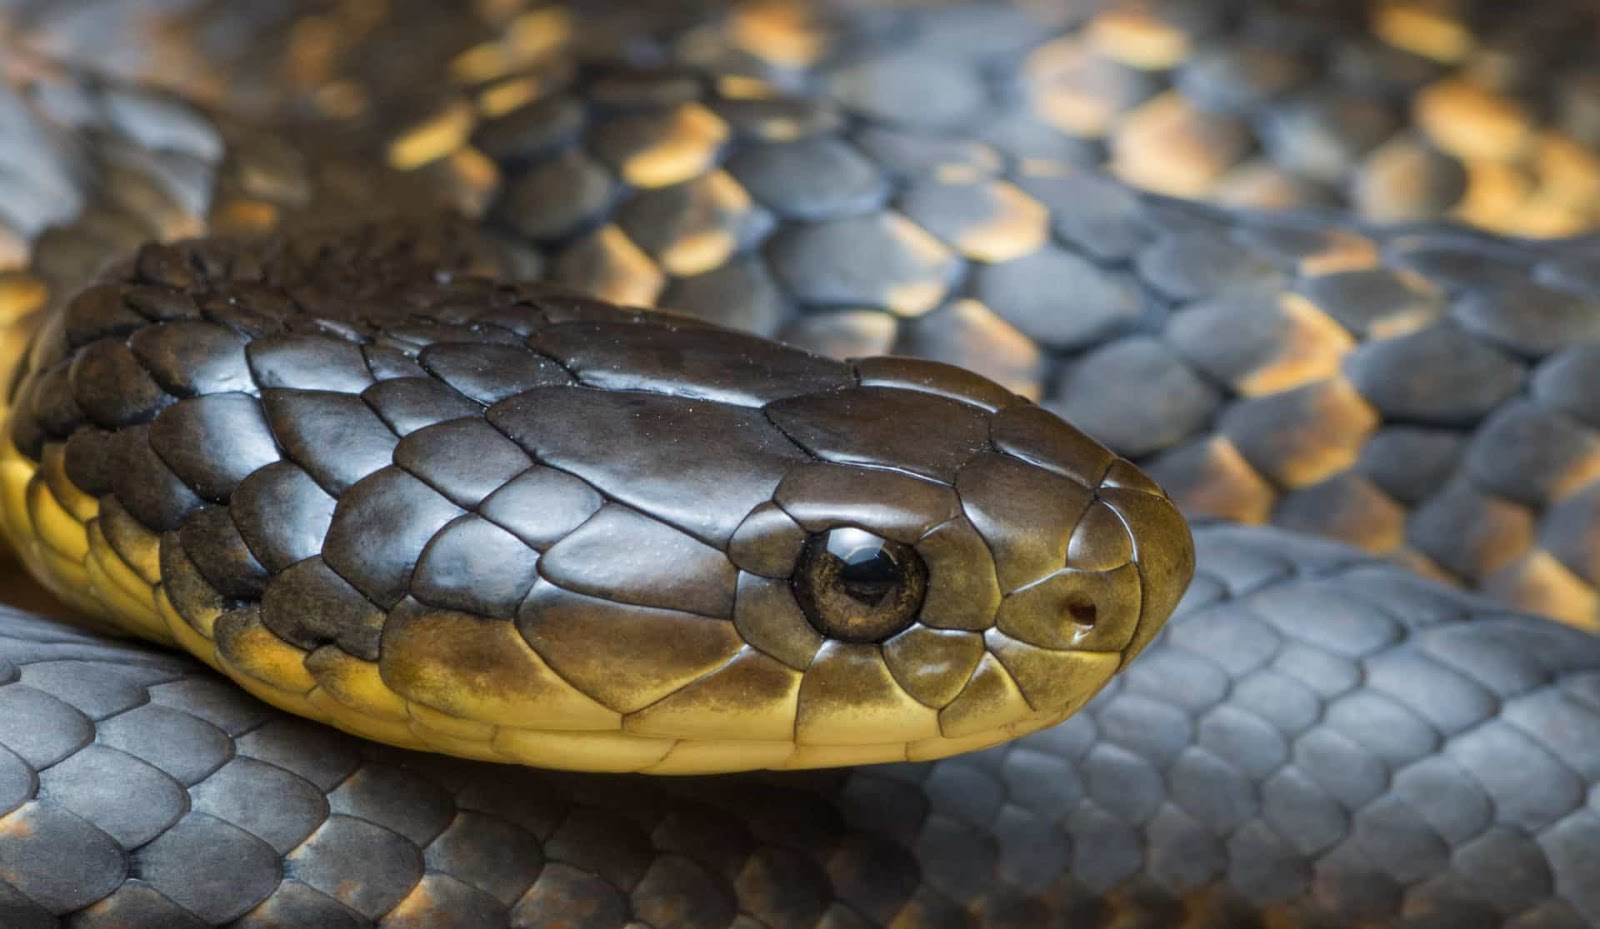 A life-threatening encounter with a tiger snake